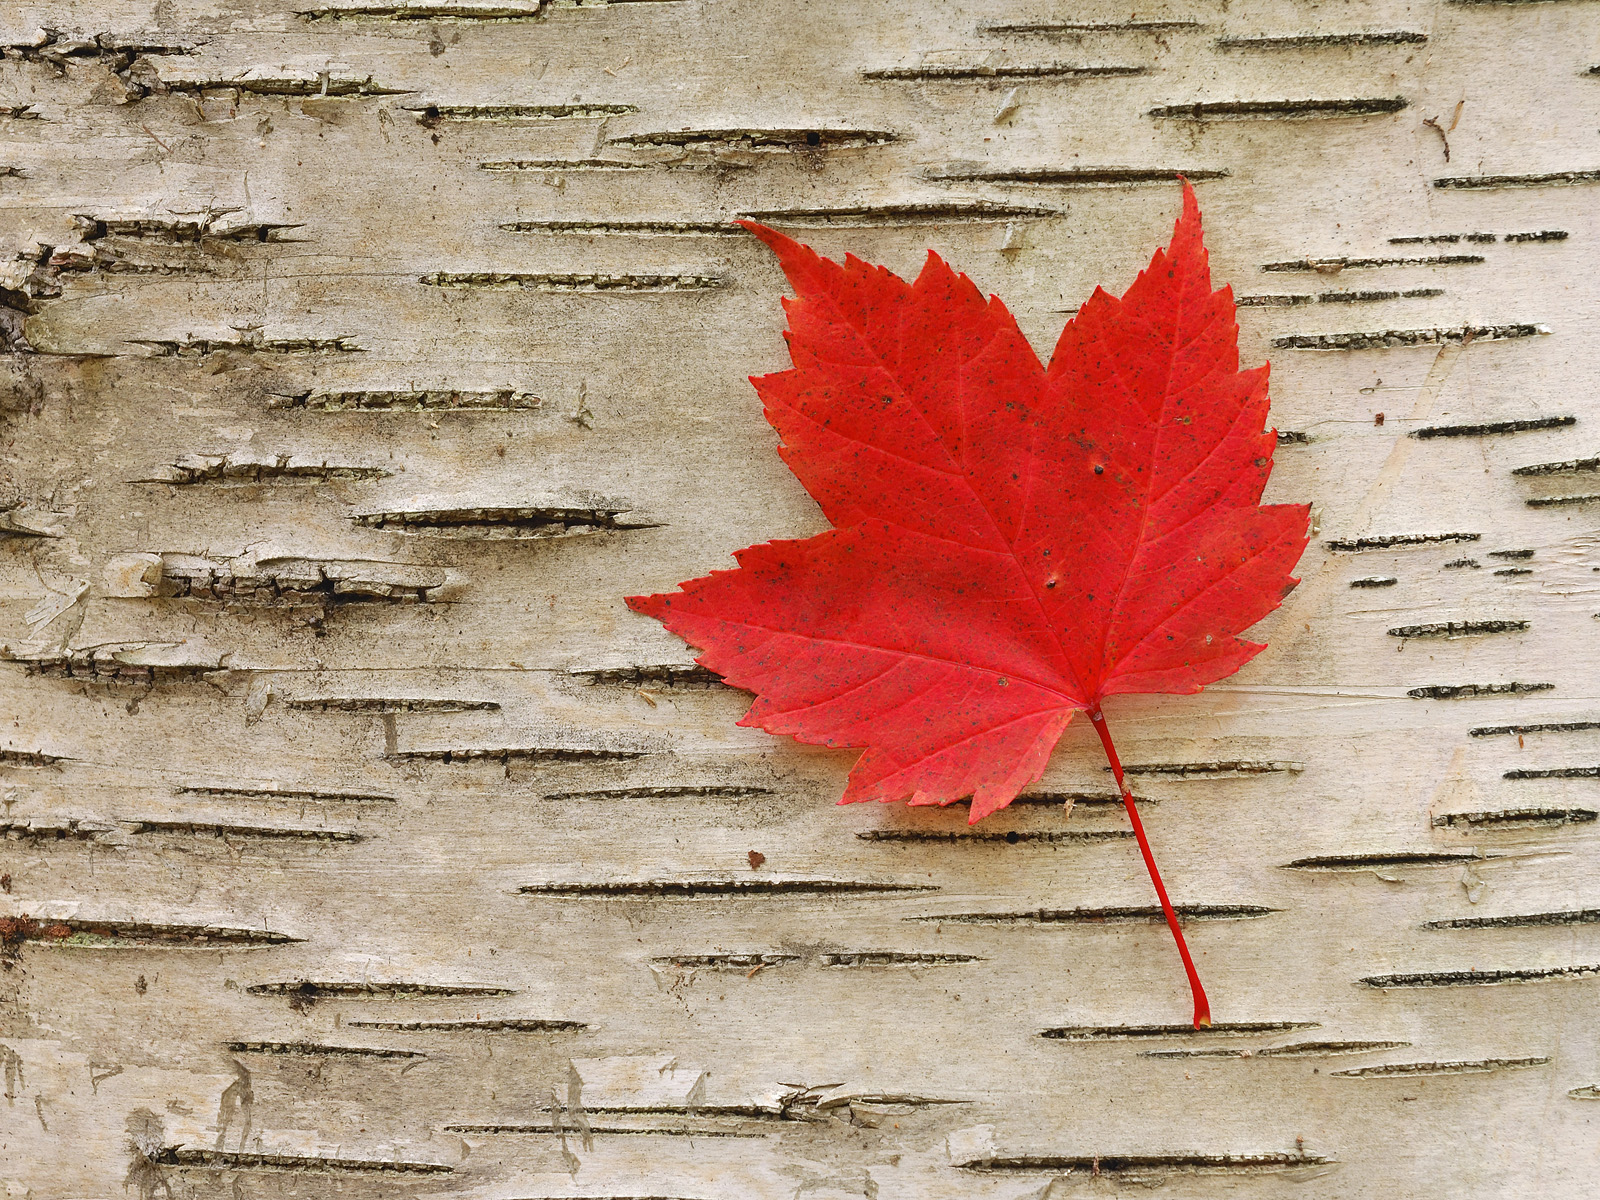 Fall Leaves Hd Wallpaper Maple Leaf Image Wallpaper High Definition High